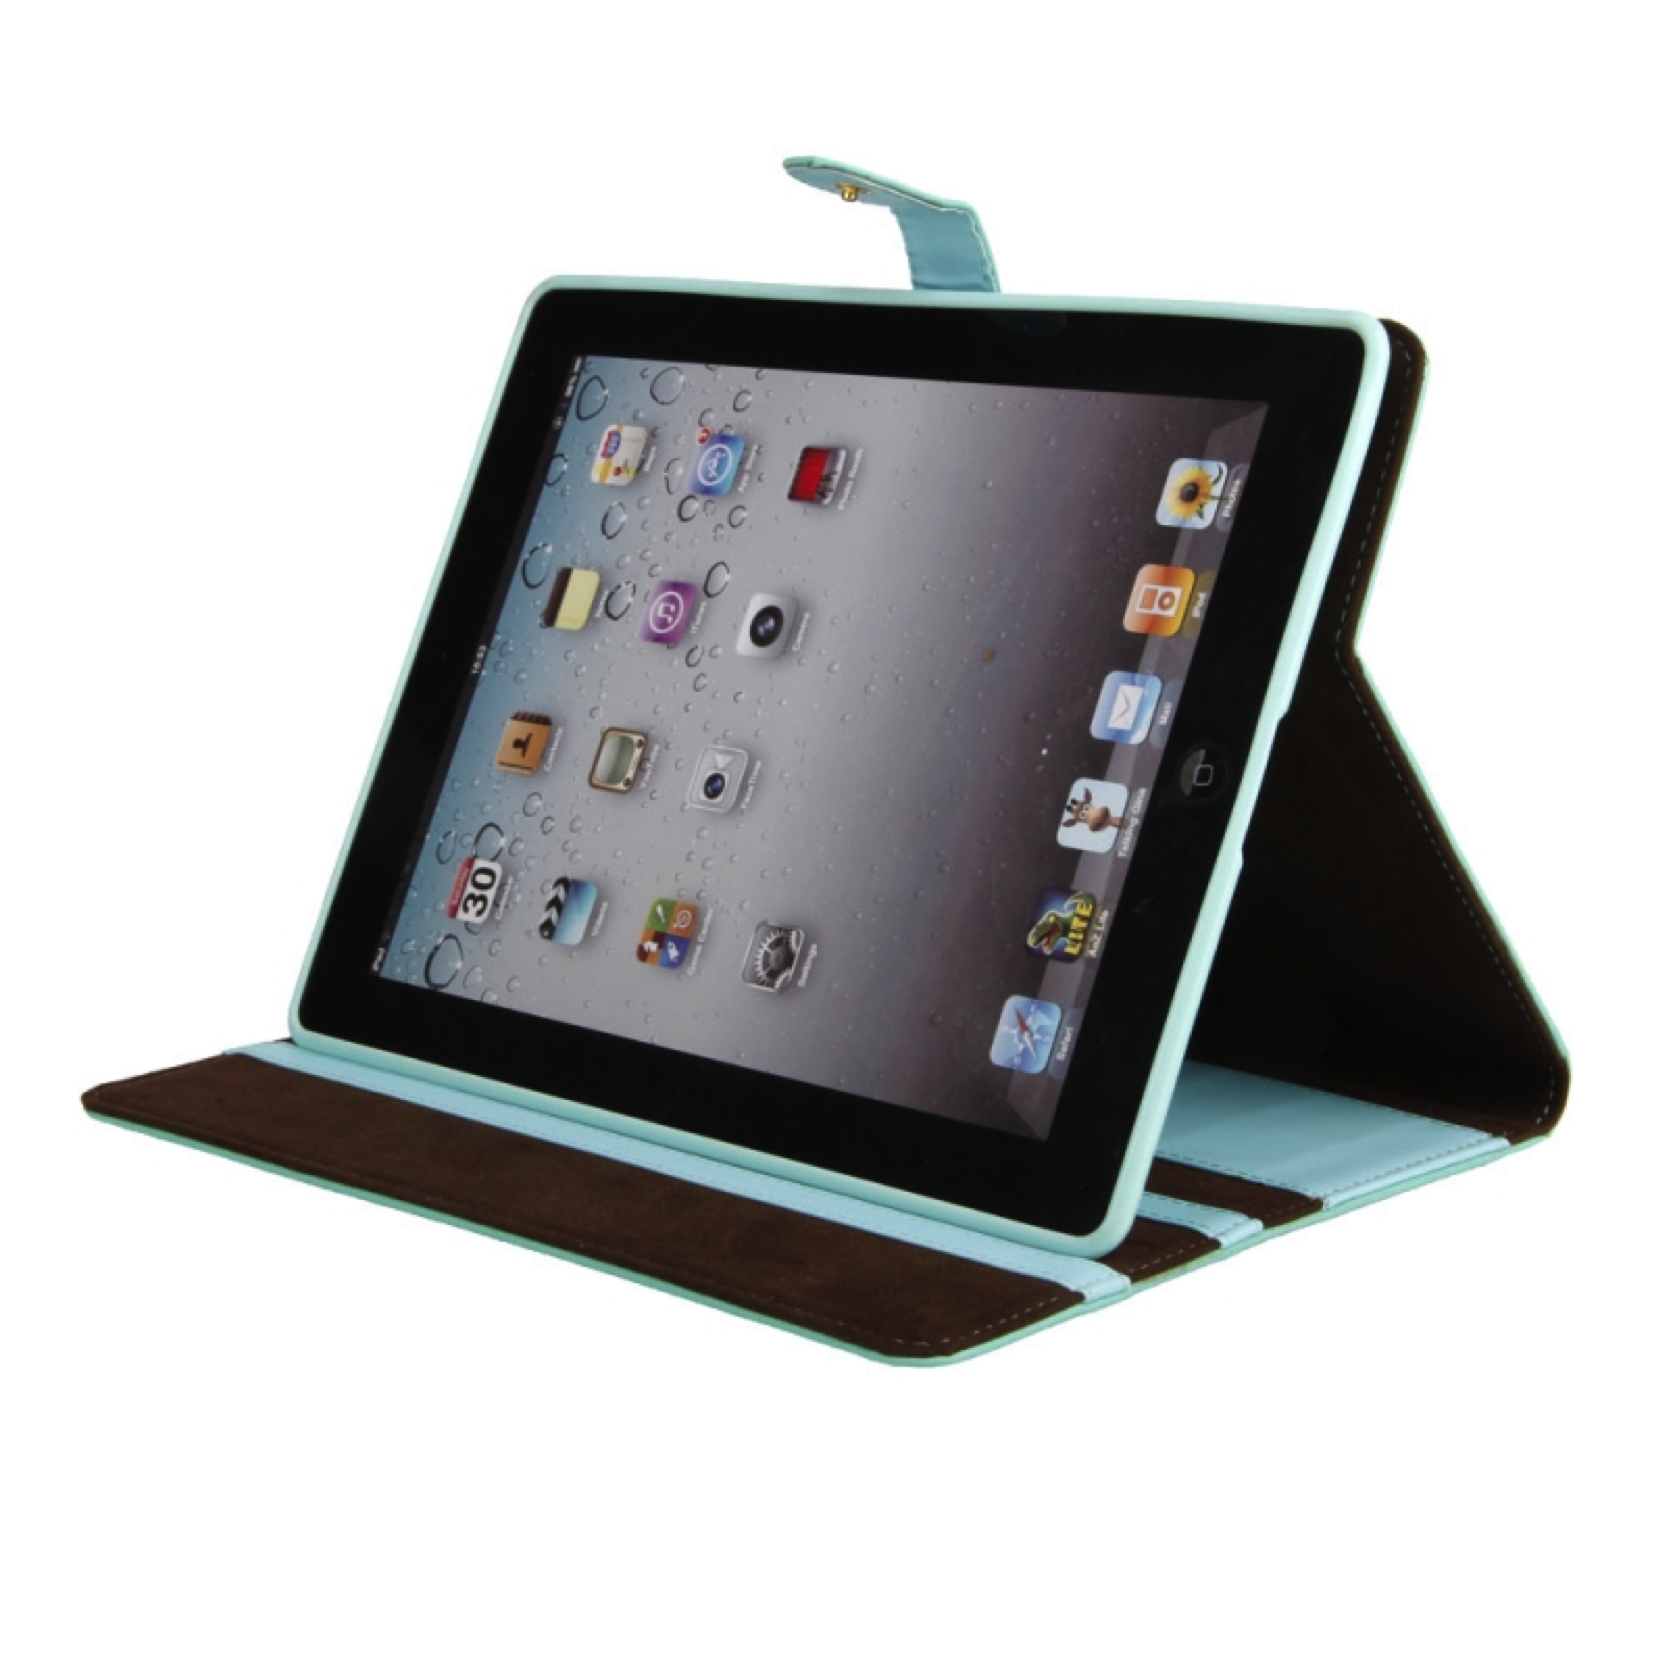 housse coque etui en cuir ipad 2 3 4 5 air ipad mini stylet ebay. Black Bedroom Furniture Sets. Home Design Ideas